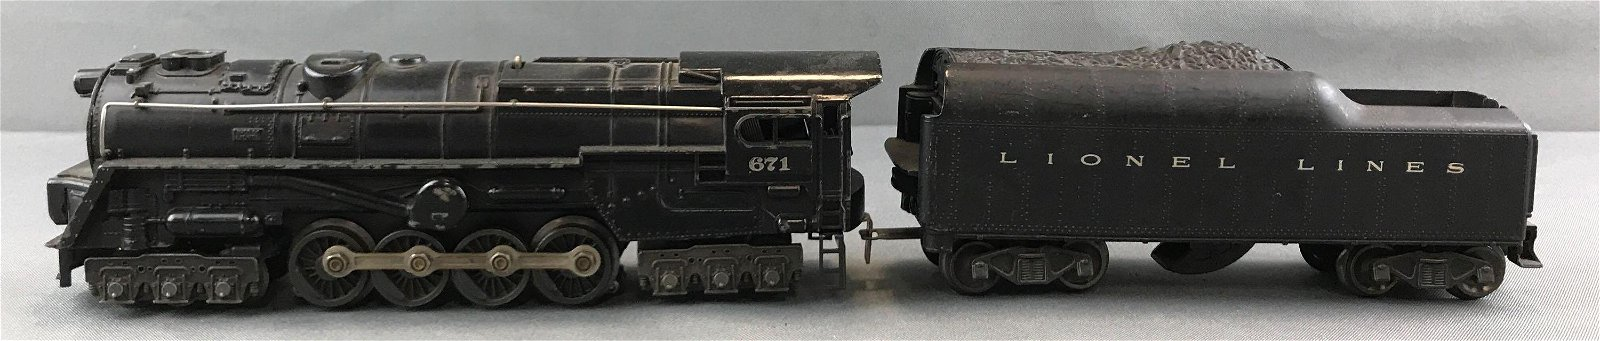 Lionel Lines engine and tender 671